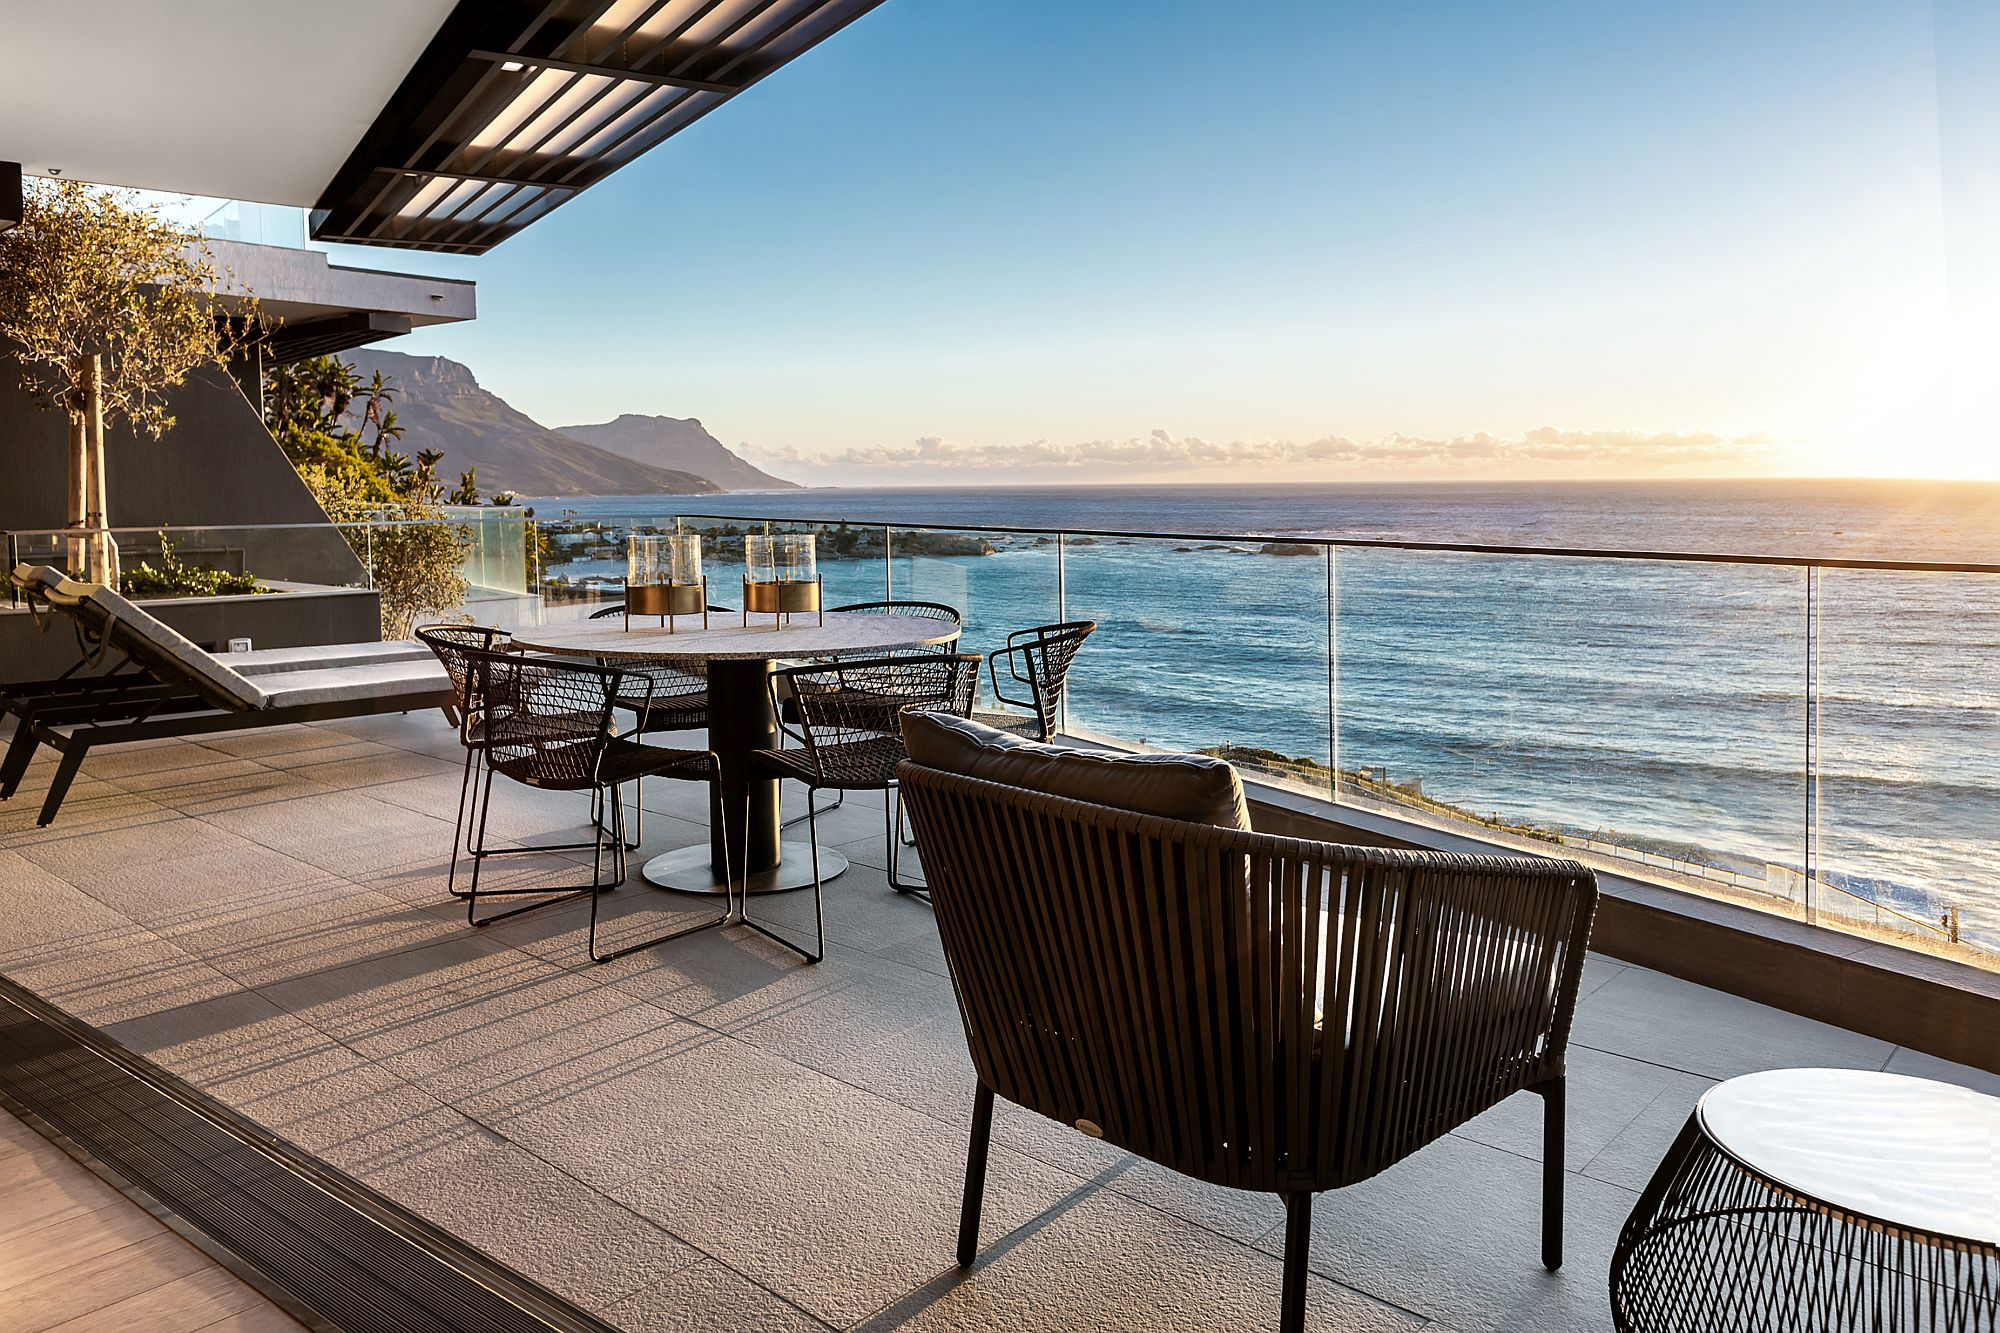 Custom-tables-in-black-granite-along-with-comfy-chairs-for-the-amazing-balcony-with-ocean-views